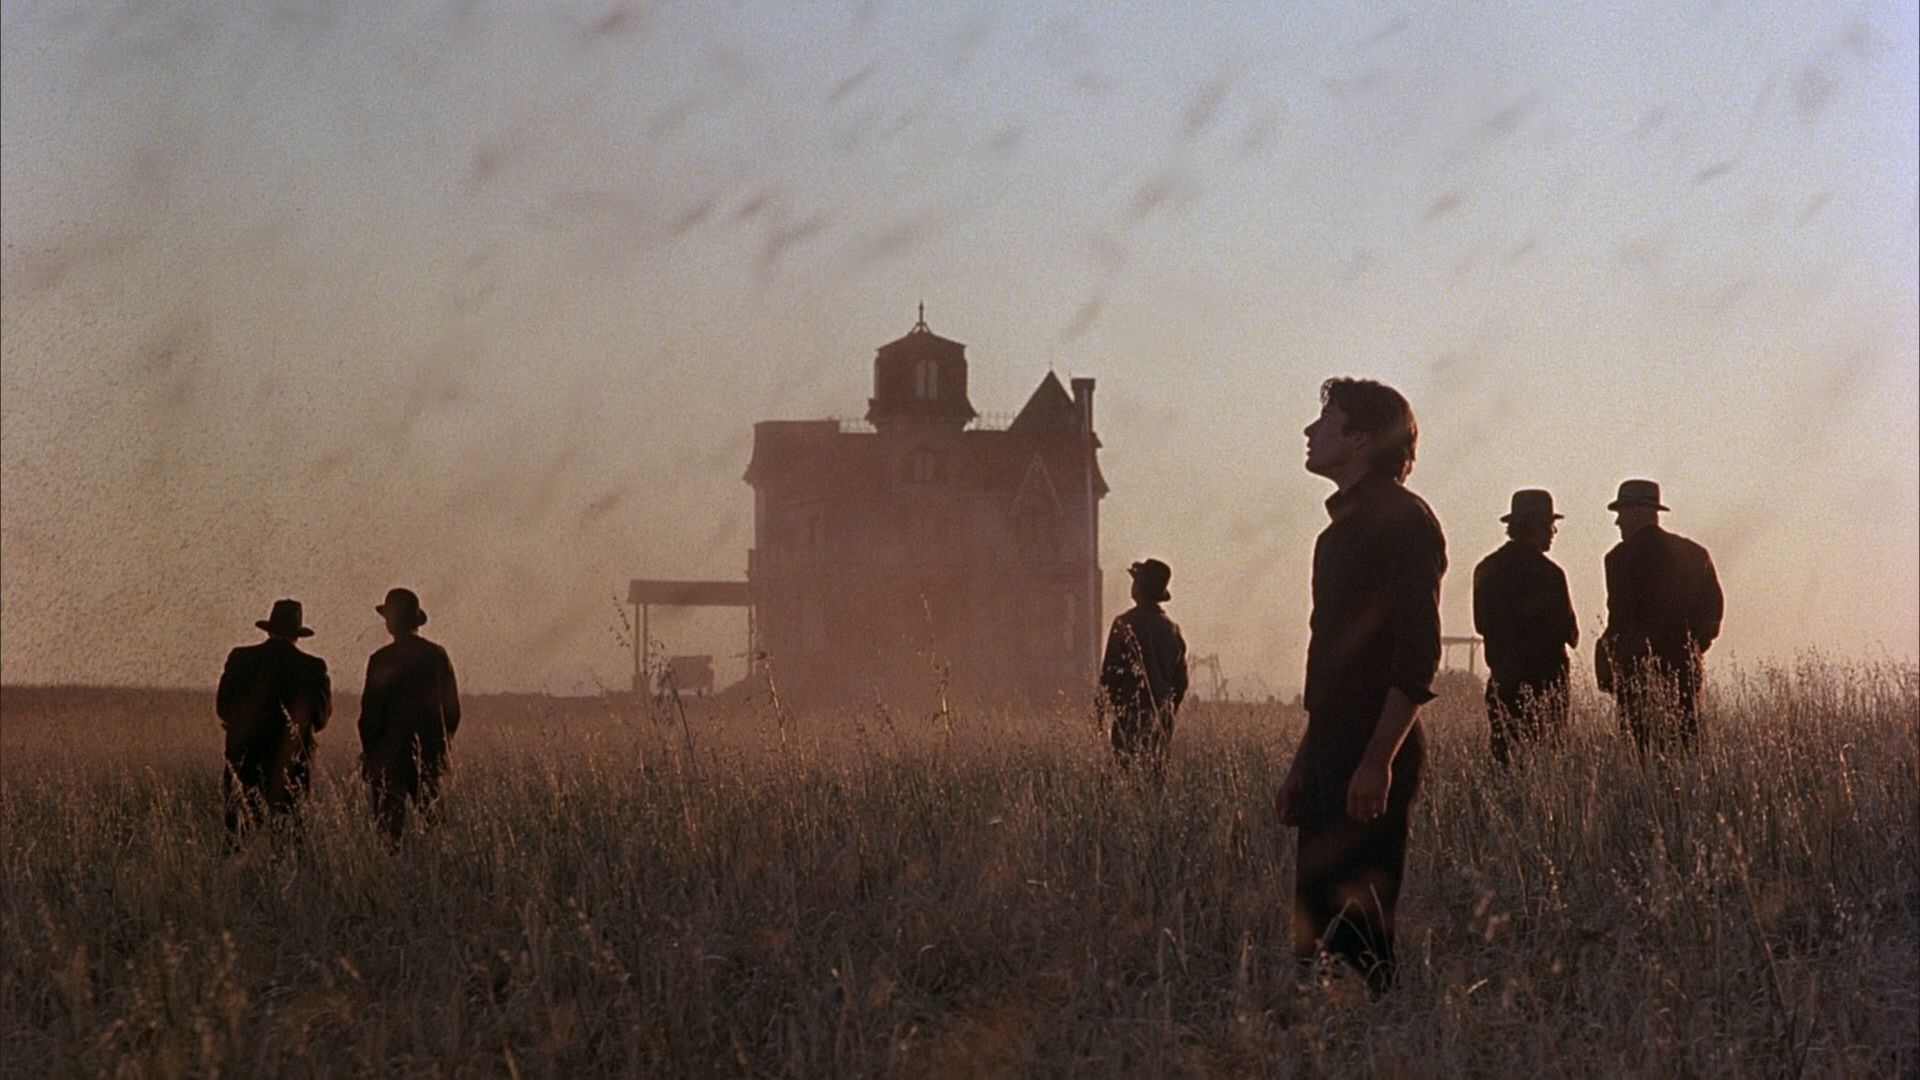 An image from Days of Heaven